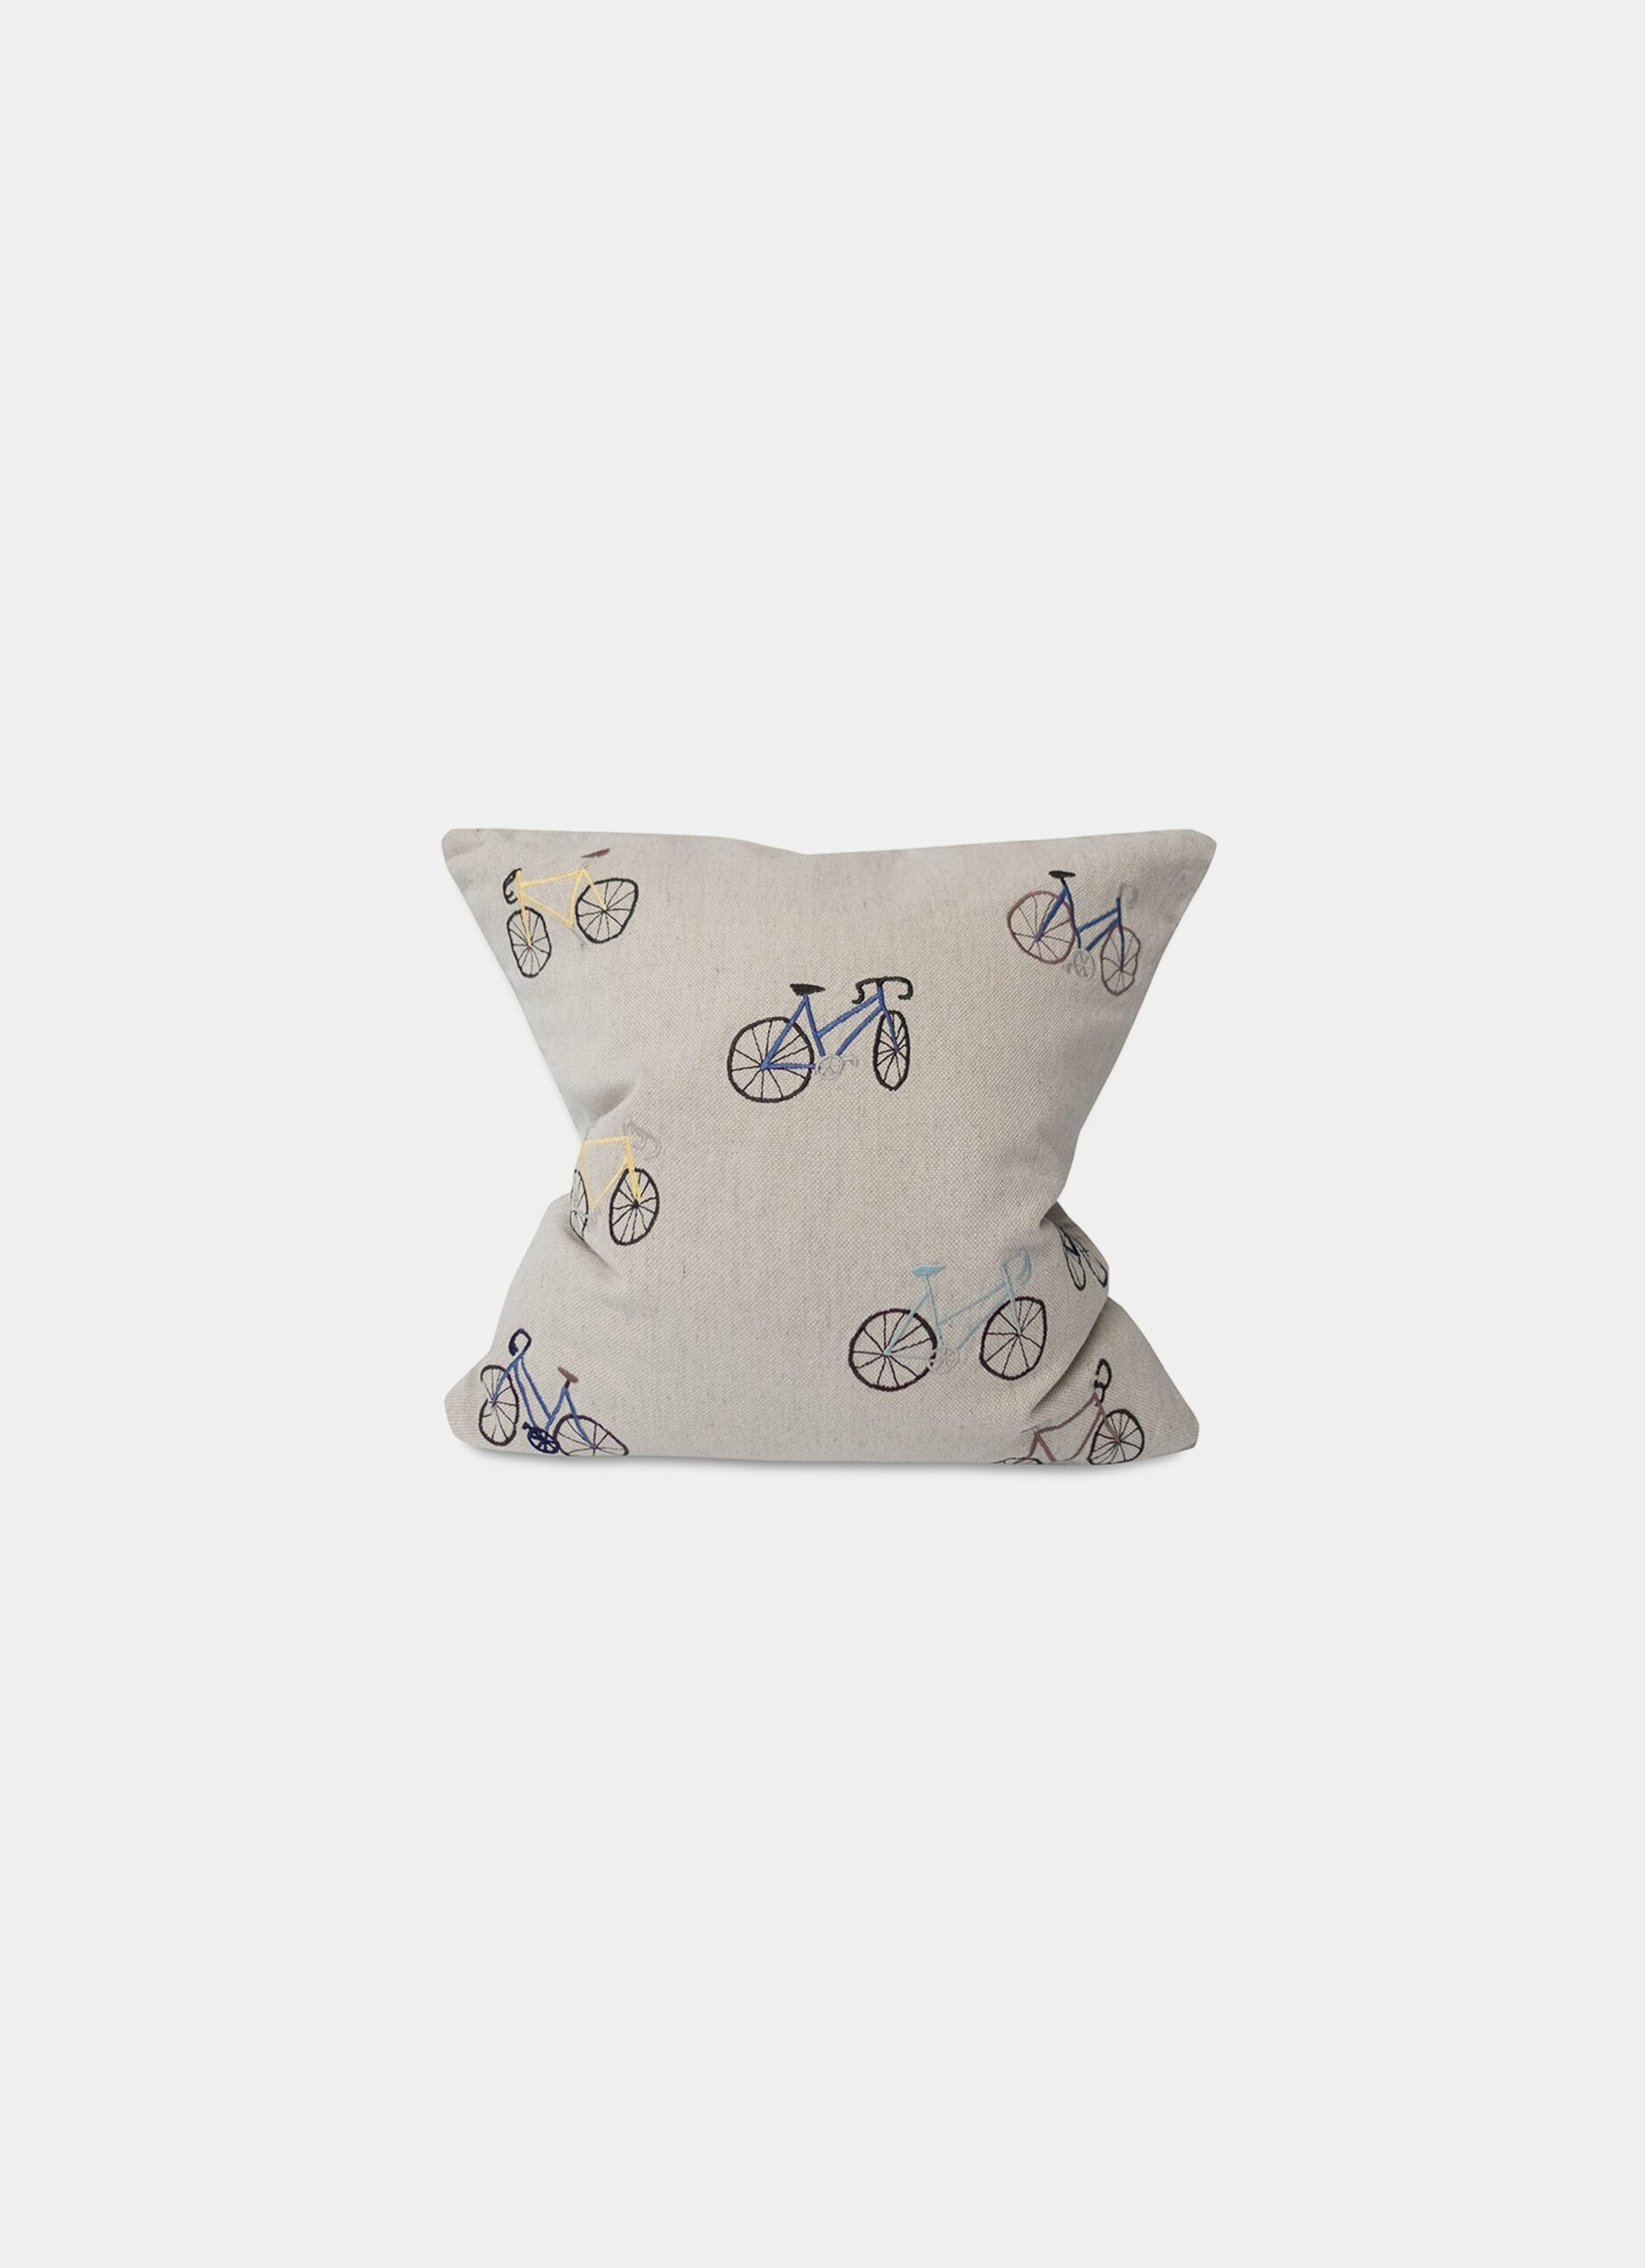 Fine Little Day - Bicycles - Embroidered Cushion - Linen and Cotton